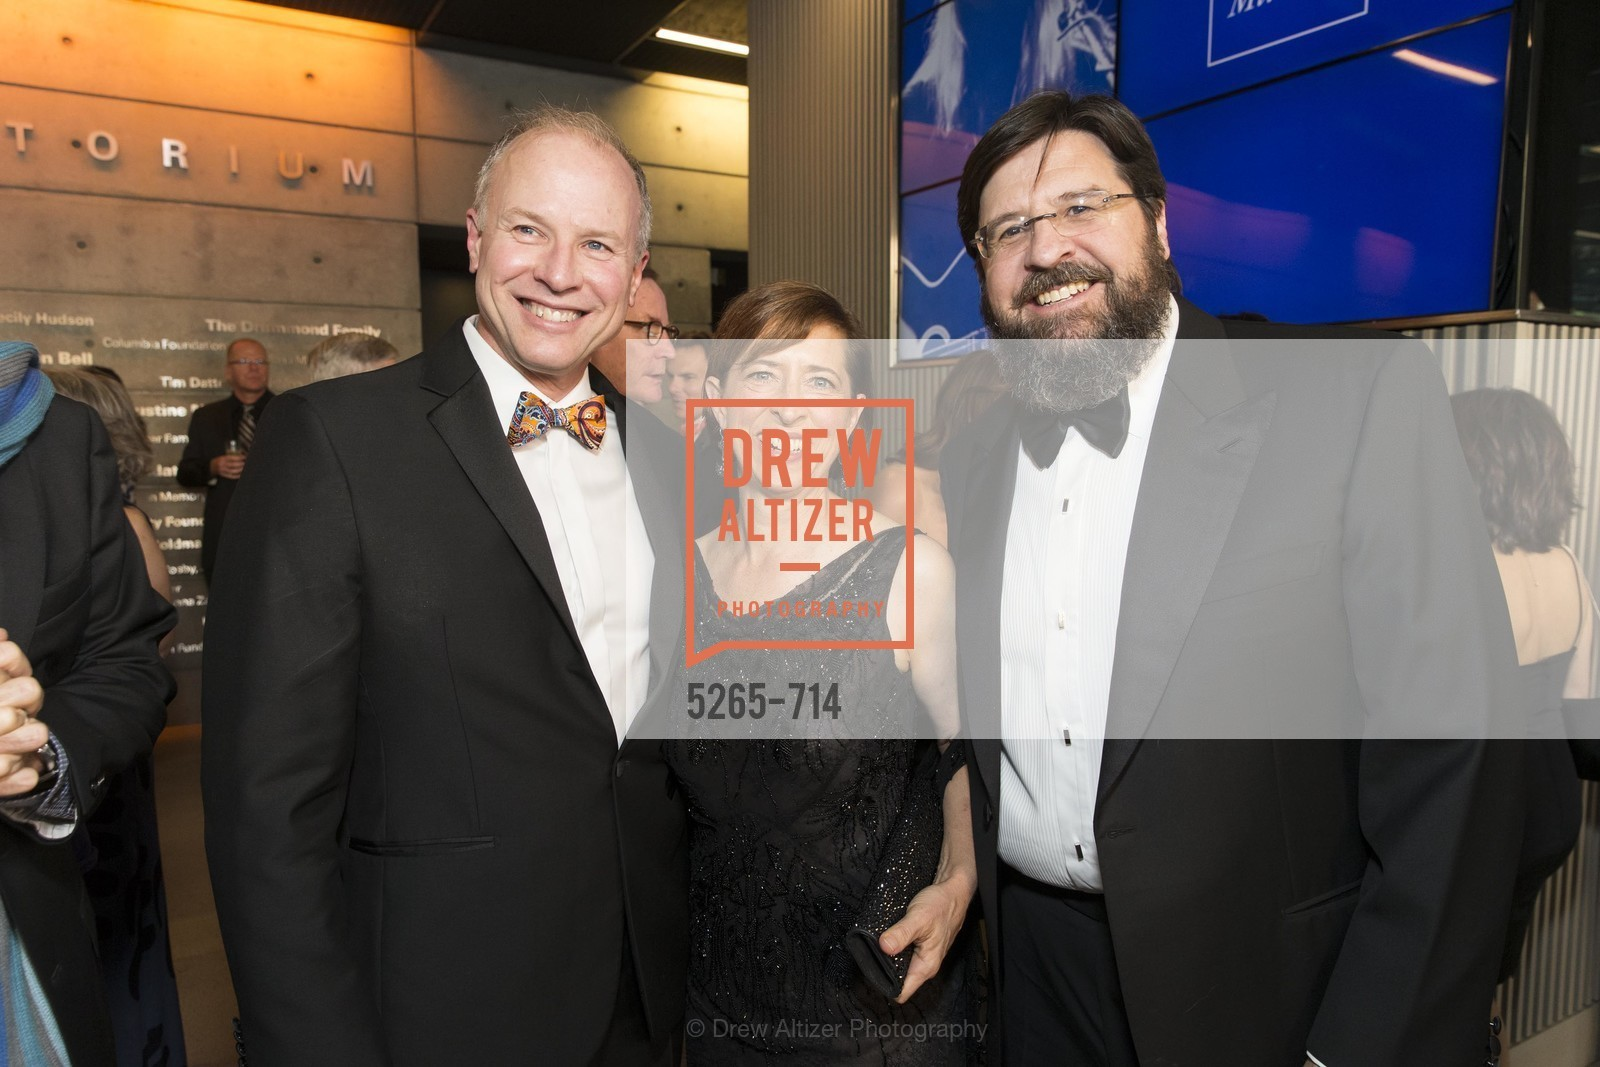 Don Derheim, Claire Ernst, Al Bedecarre, SFJAZZ Gala 2015 Honors Joni Mitchell with Lifetime Achievement Award, US, May 9th, 2015,Drew Altizer, Drew Altizer Photography, full-service agency, private events, San Francisco photographer, photographer california